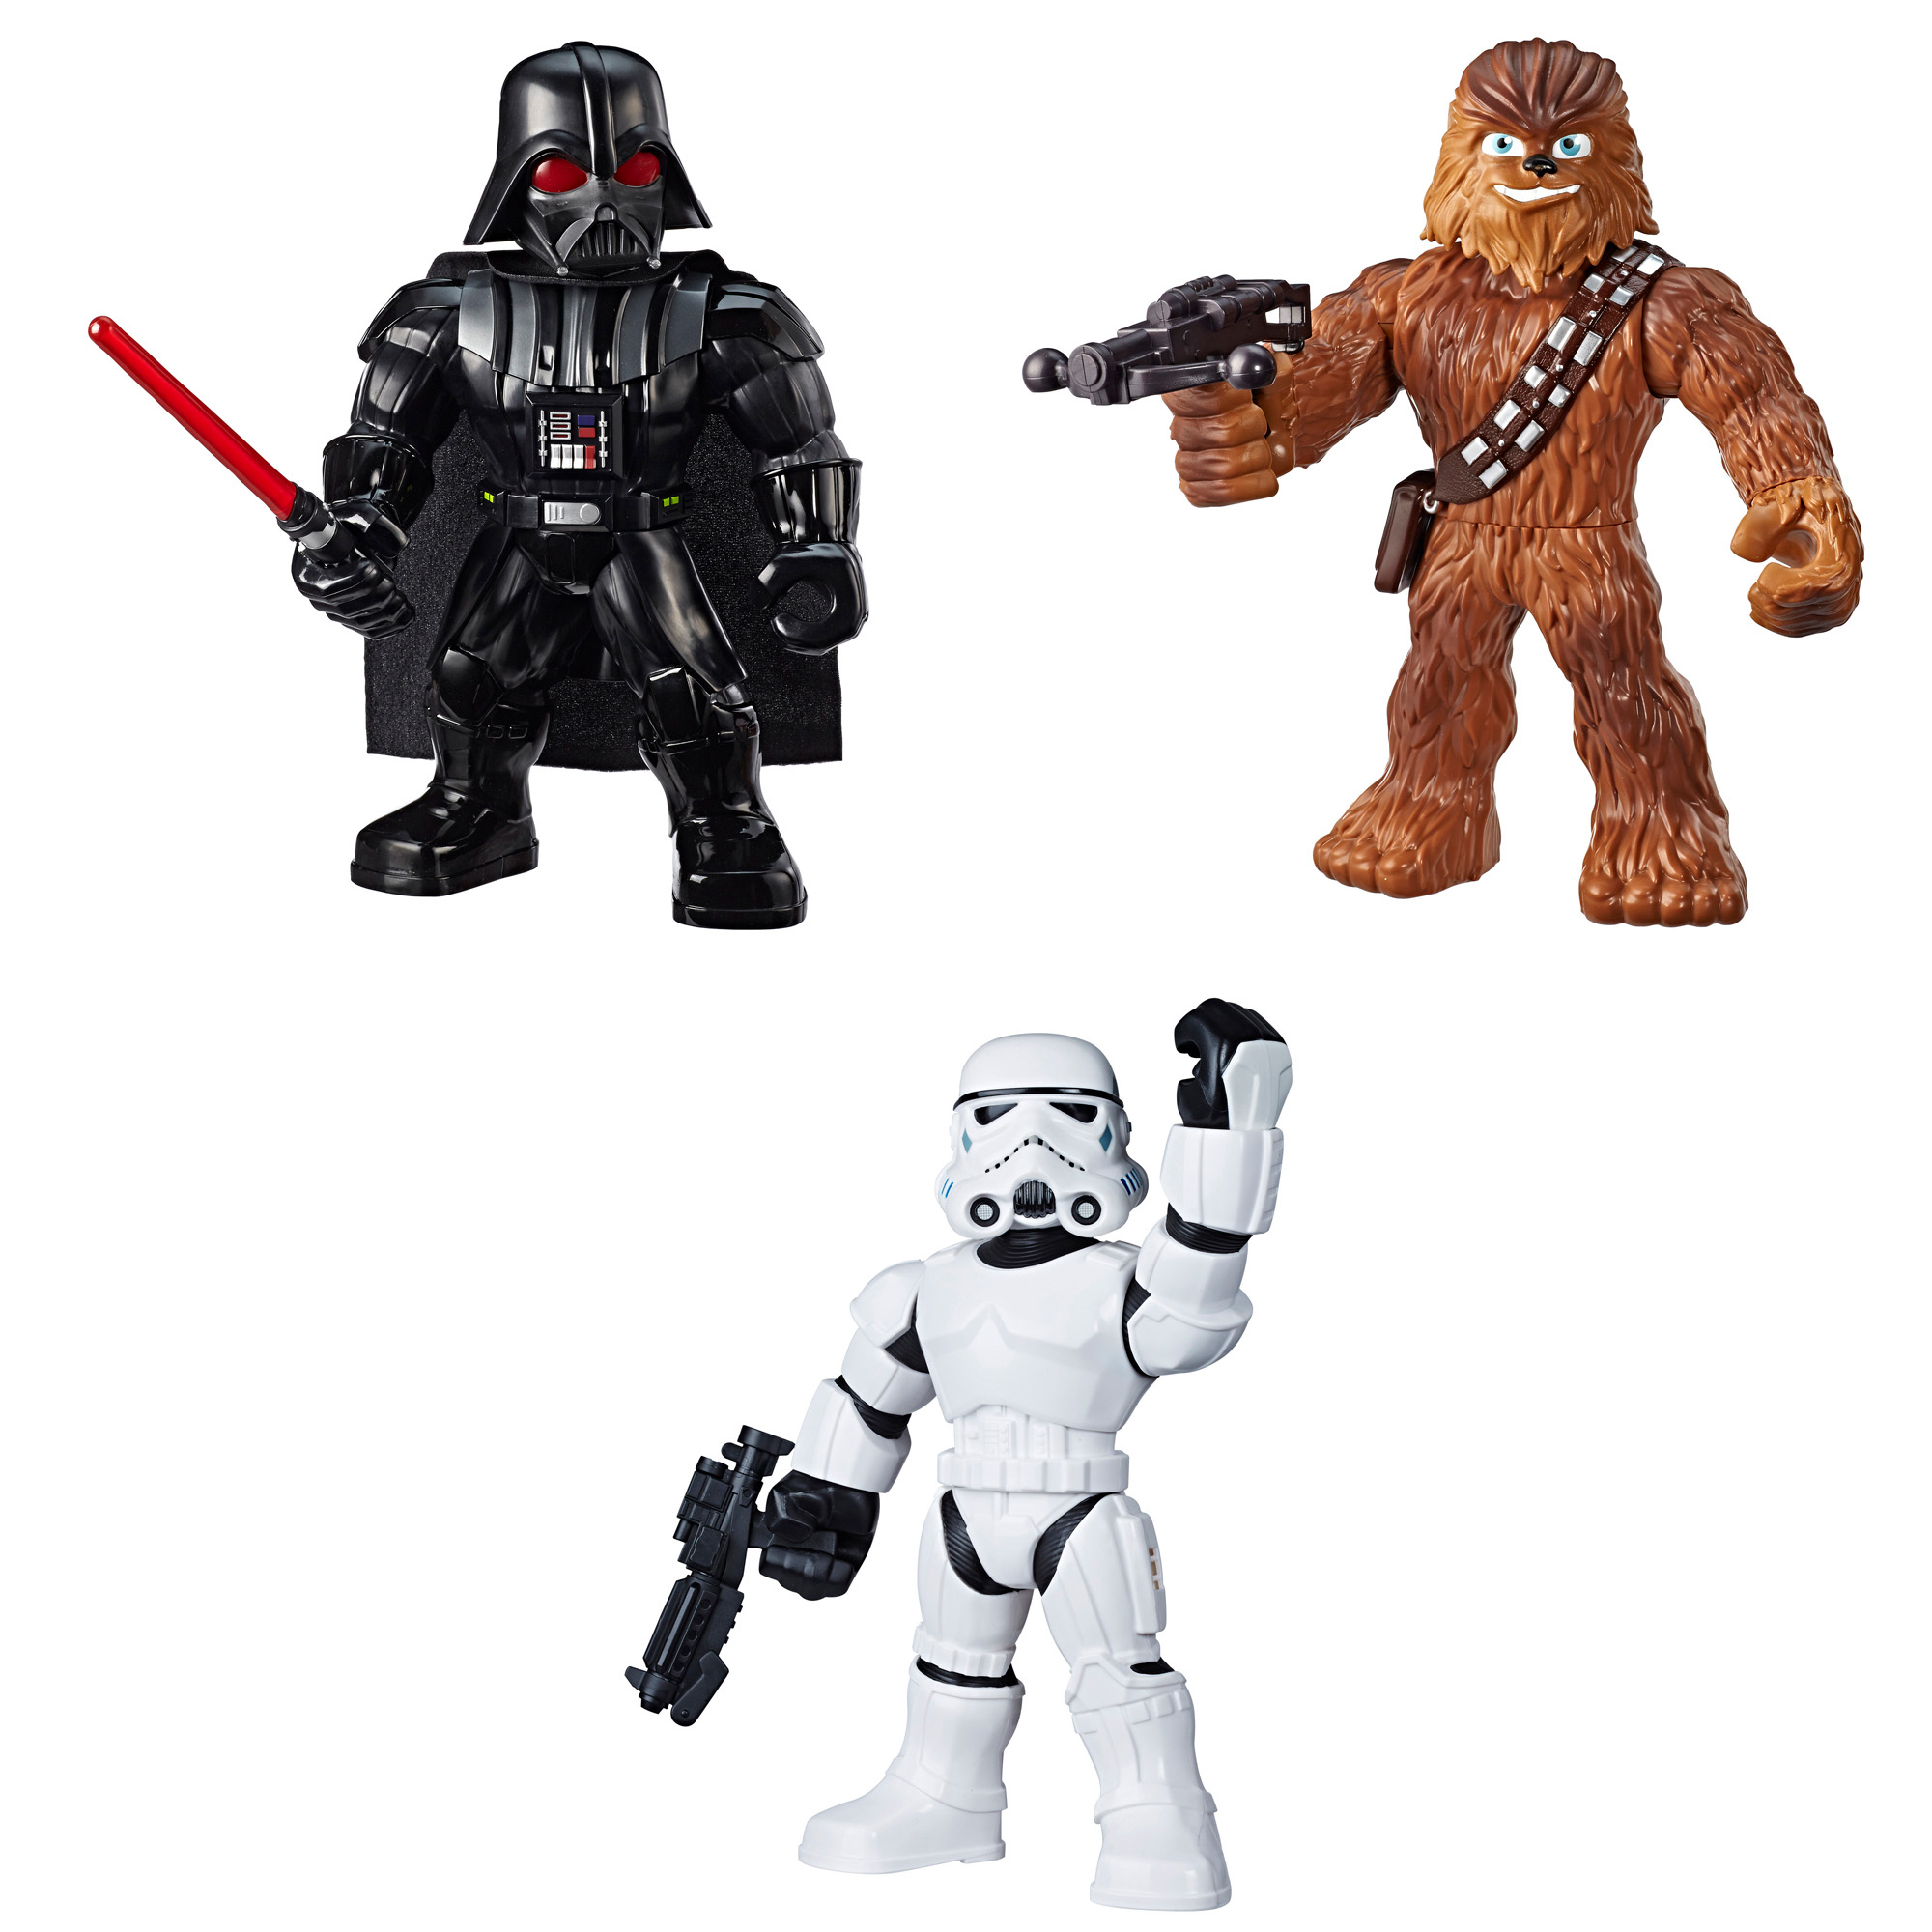 Star Wars Galactic Heroes Mega Mighties 10-Inch Action Figure